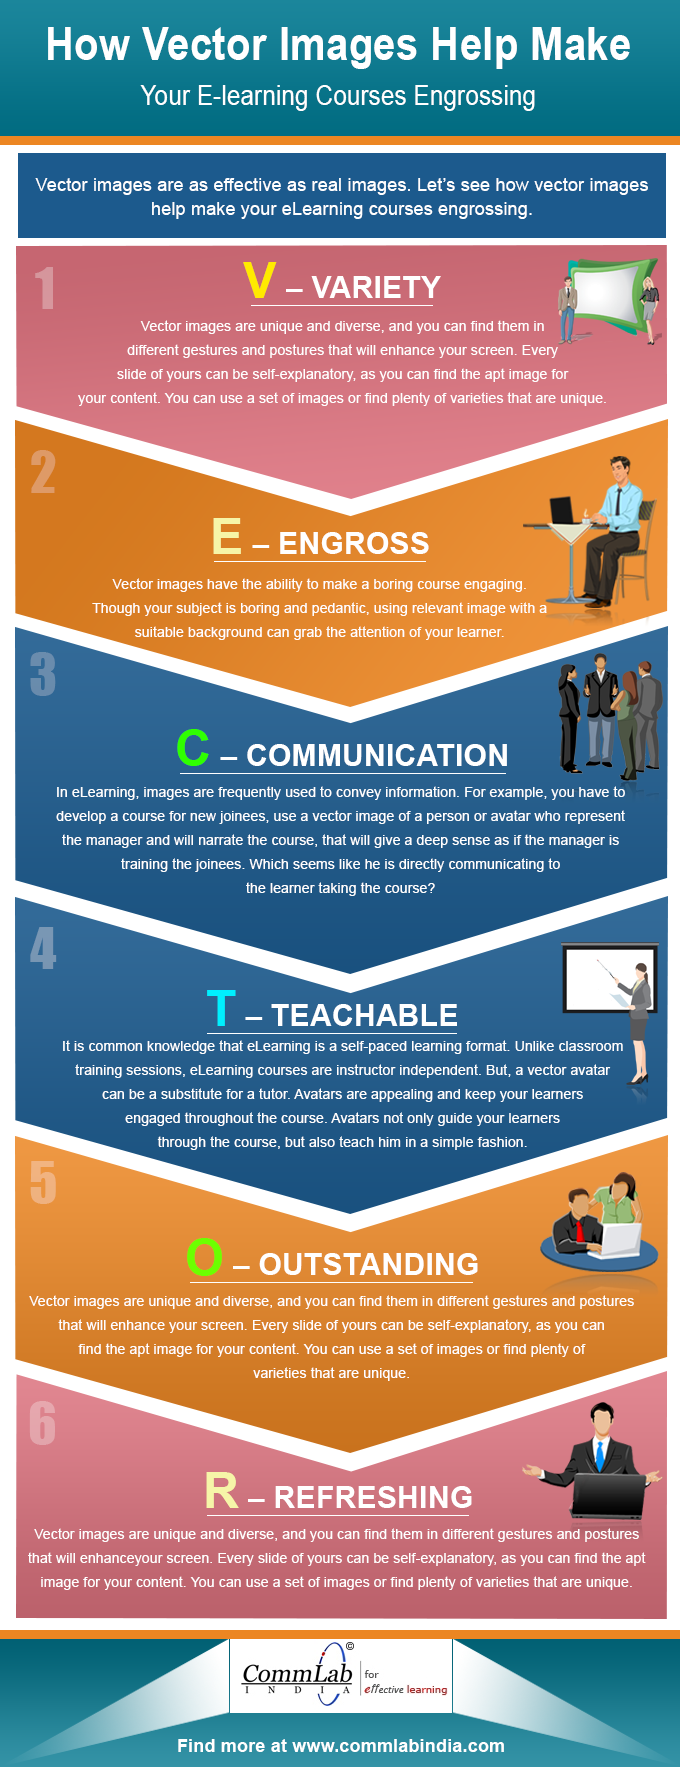 How Vector Images Help Make Your E-learning Courses Engrossing – An Infographic